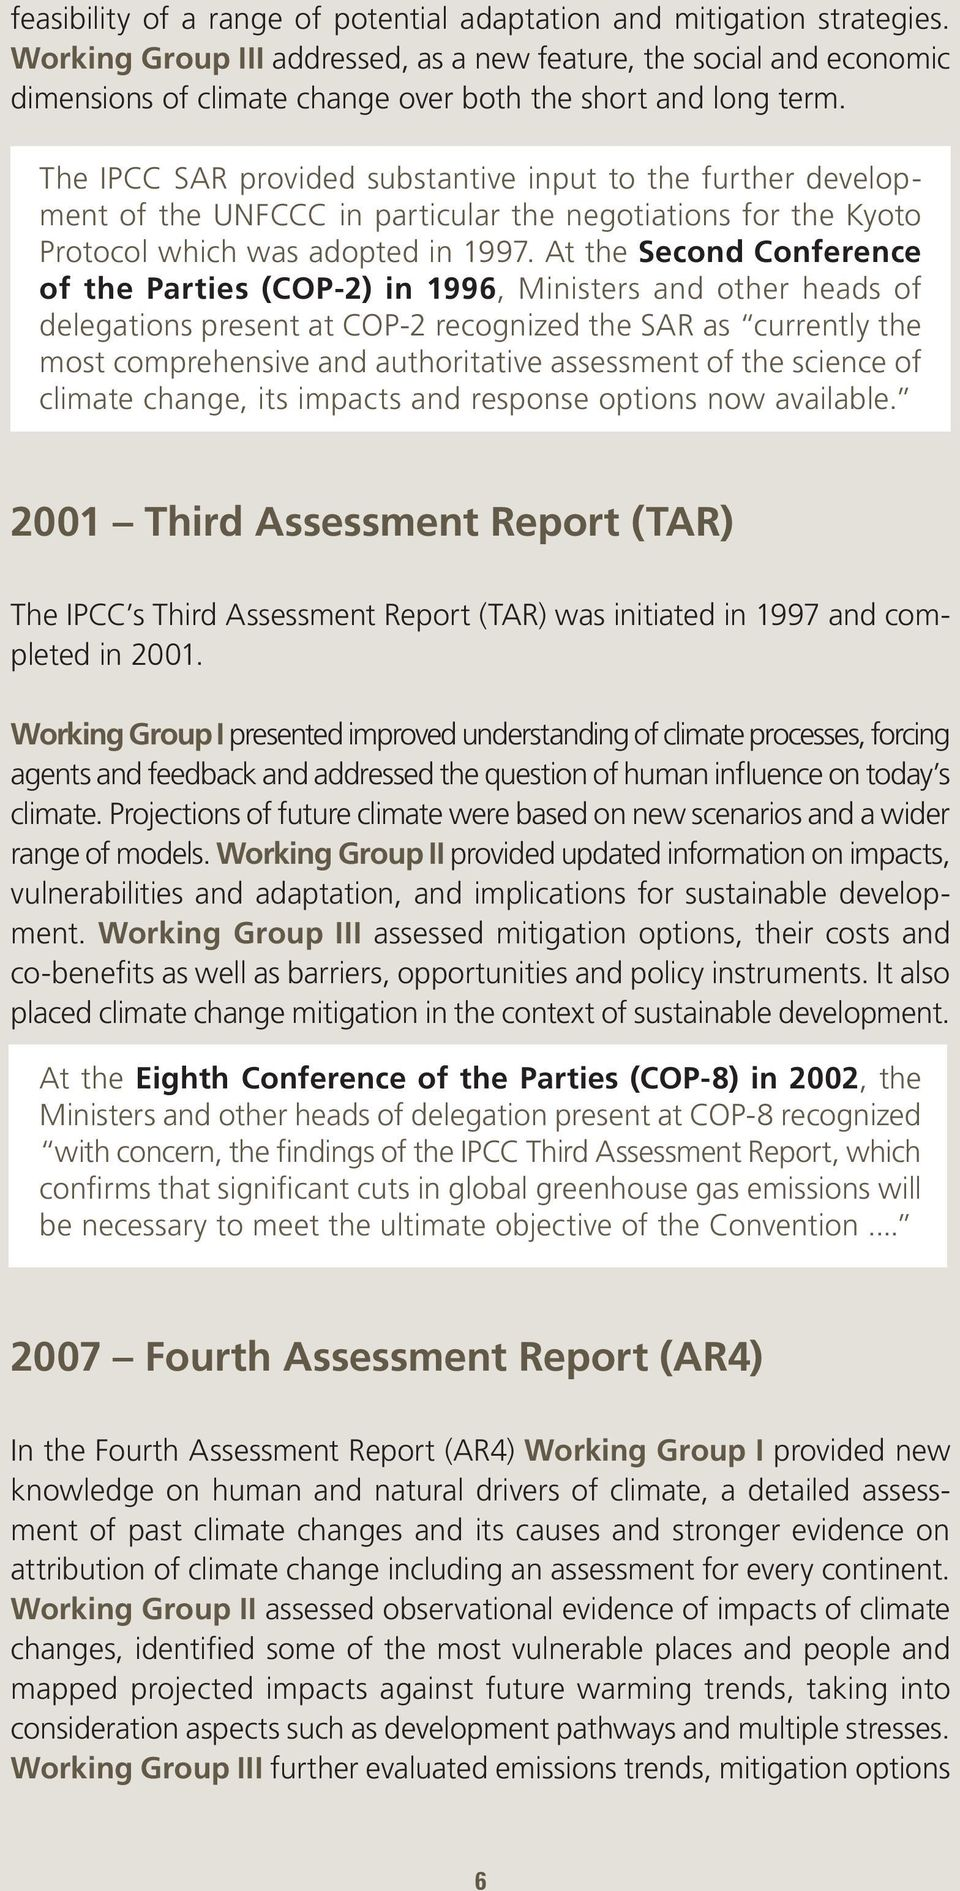 The IPCC SAR provided substantive input to the further development of the UNFCCC in particular the negotiations for the Kyoto Protocol which was adopted in 1997.